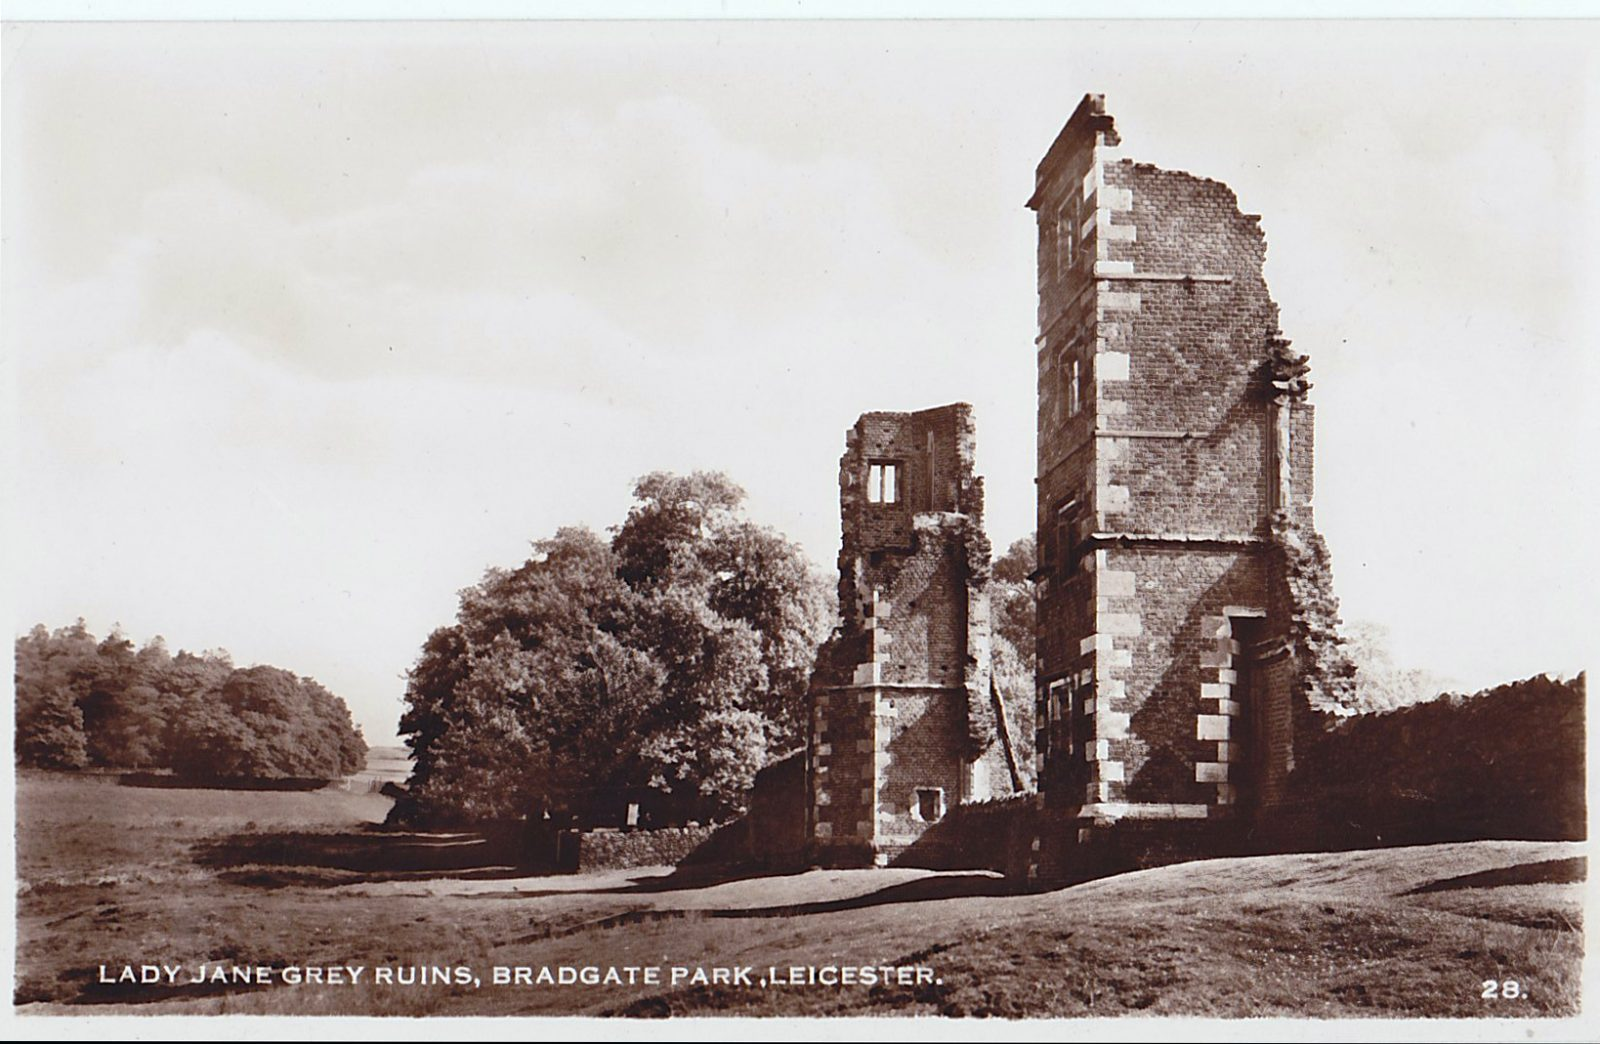 Bradgate Park, Leicester. Undated: Lady Jane Grey ruins (File:1453)